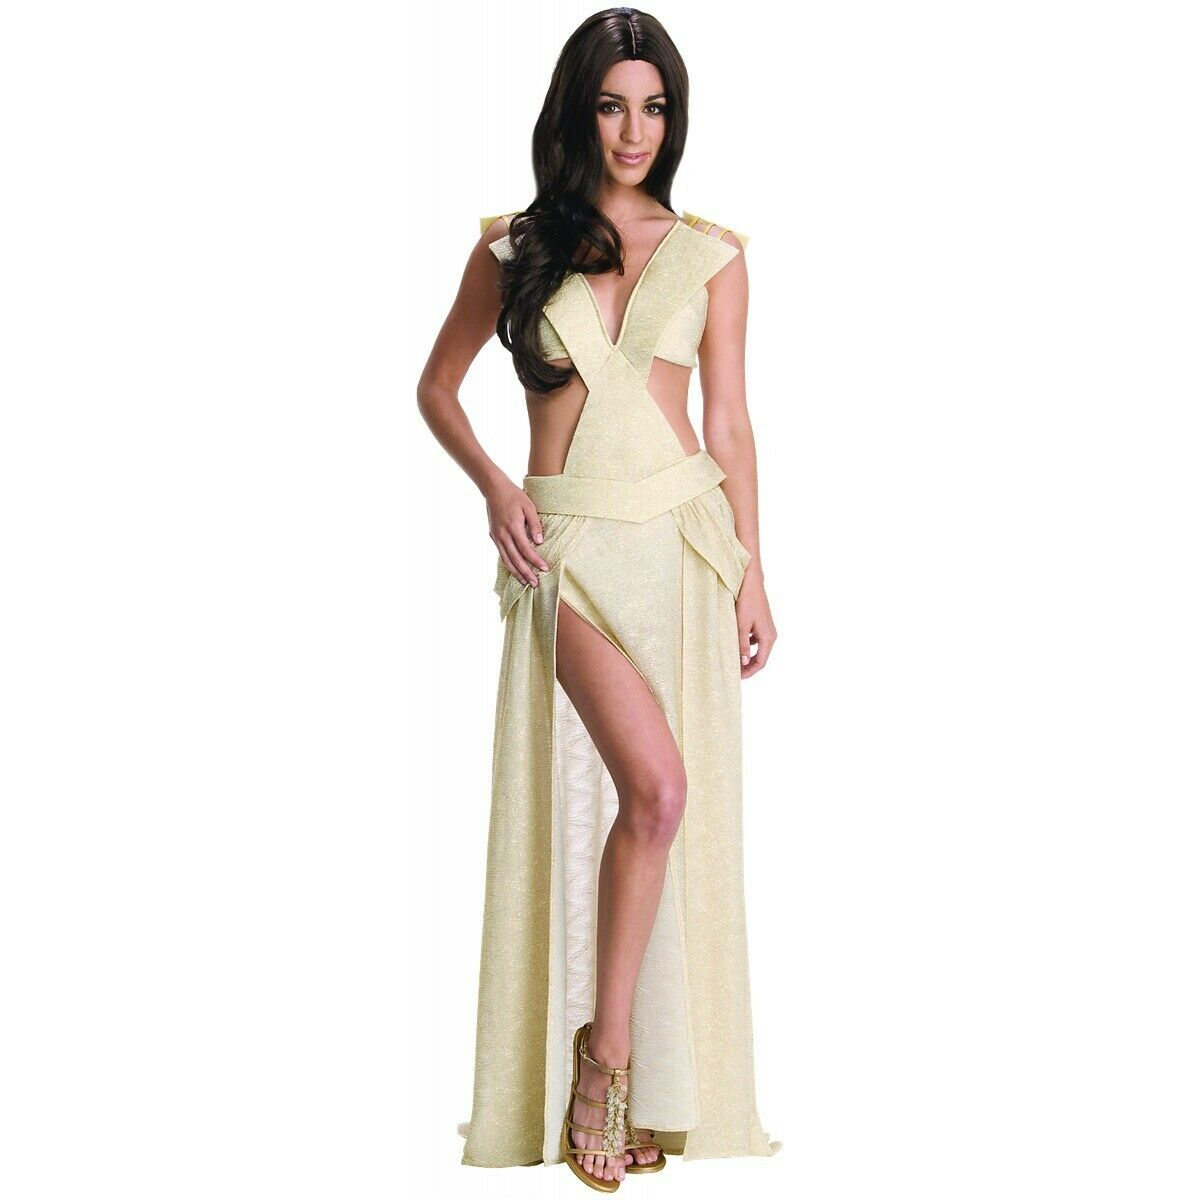 dejah thoris costume adult women john carter greek goddess halloween